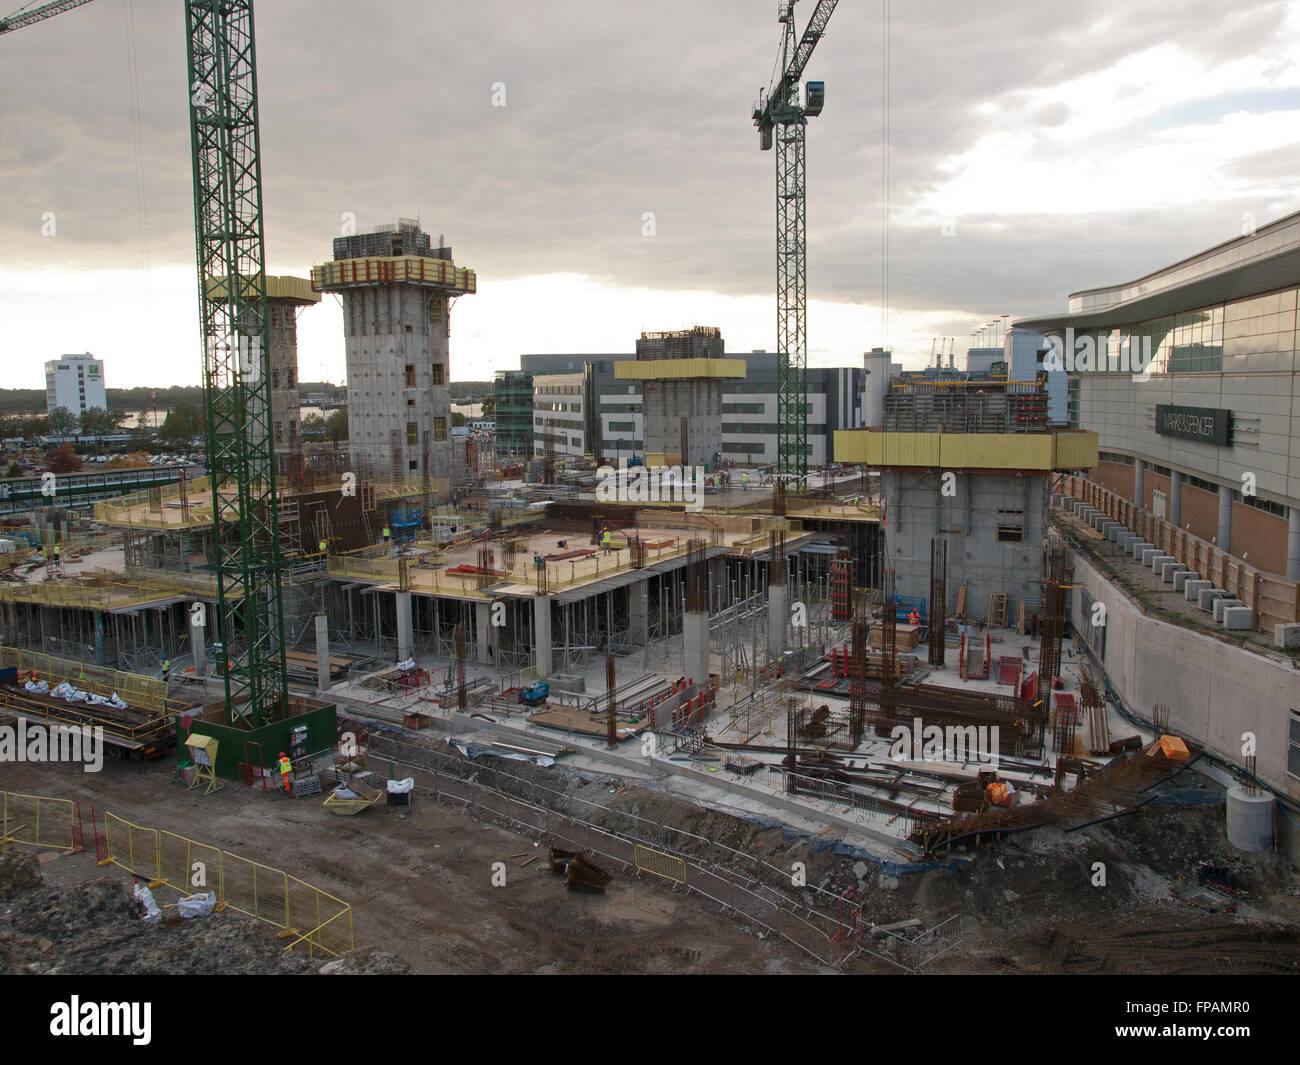 Construction of the West Quay Watermark development Southampton Hampshire UK Stock Photo